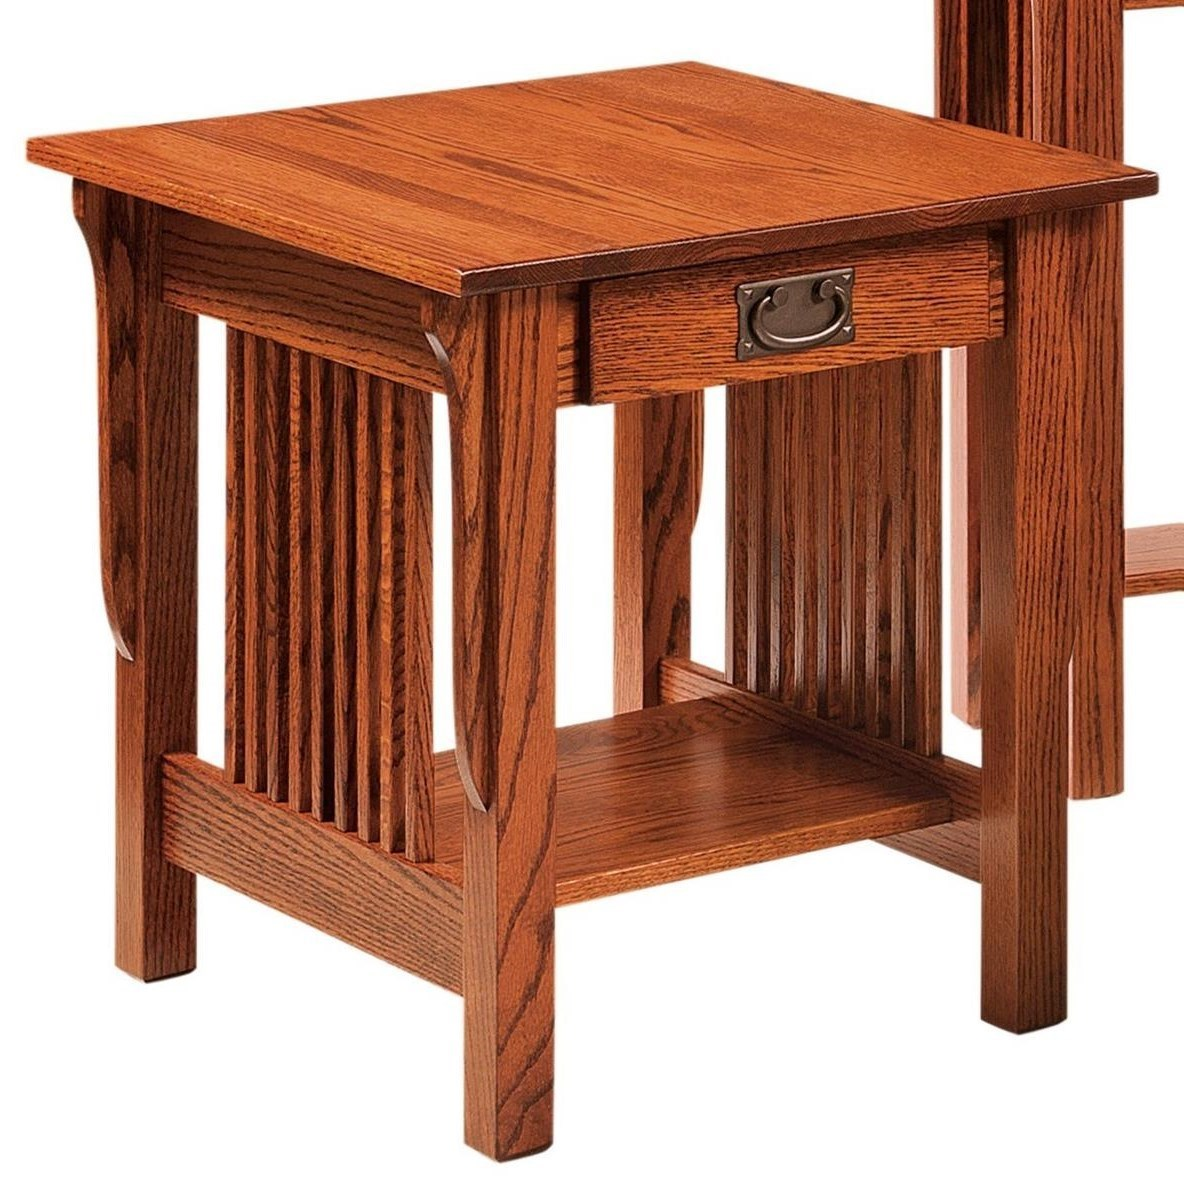 Leah End Table by Crystal Valley Hardwoods at Saugerties Furniture Mart